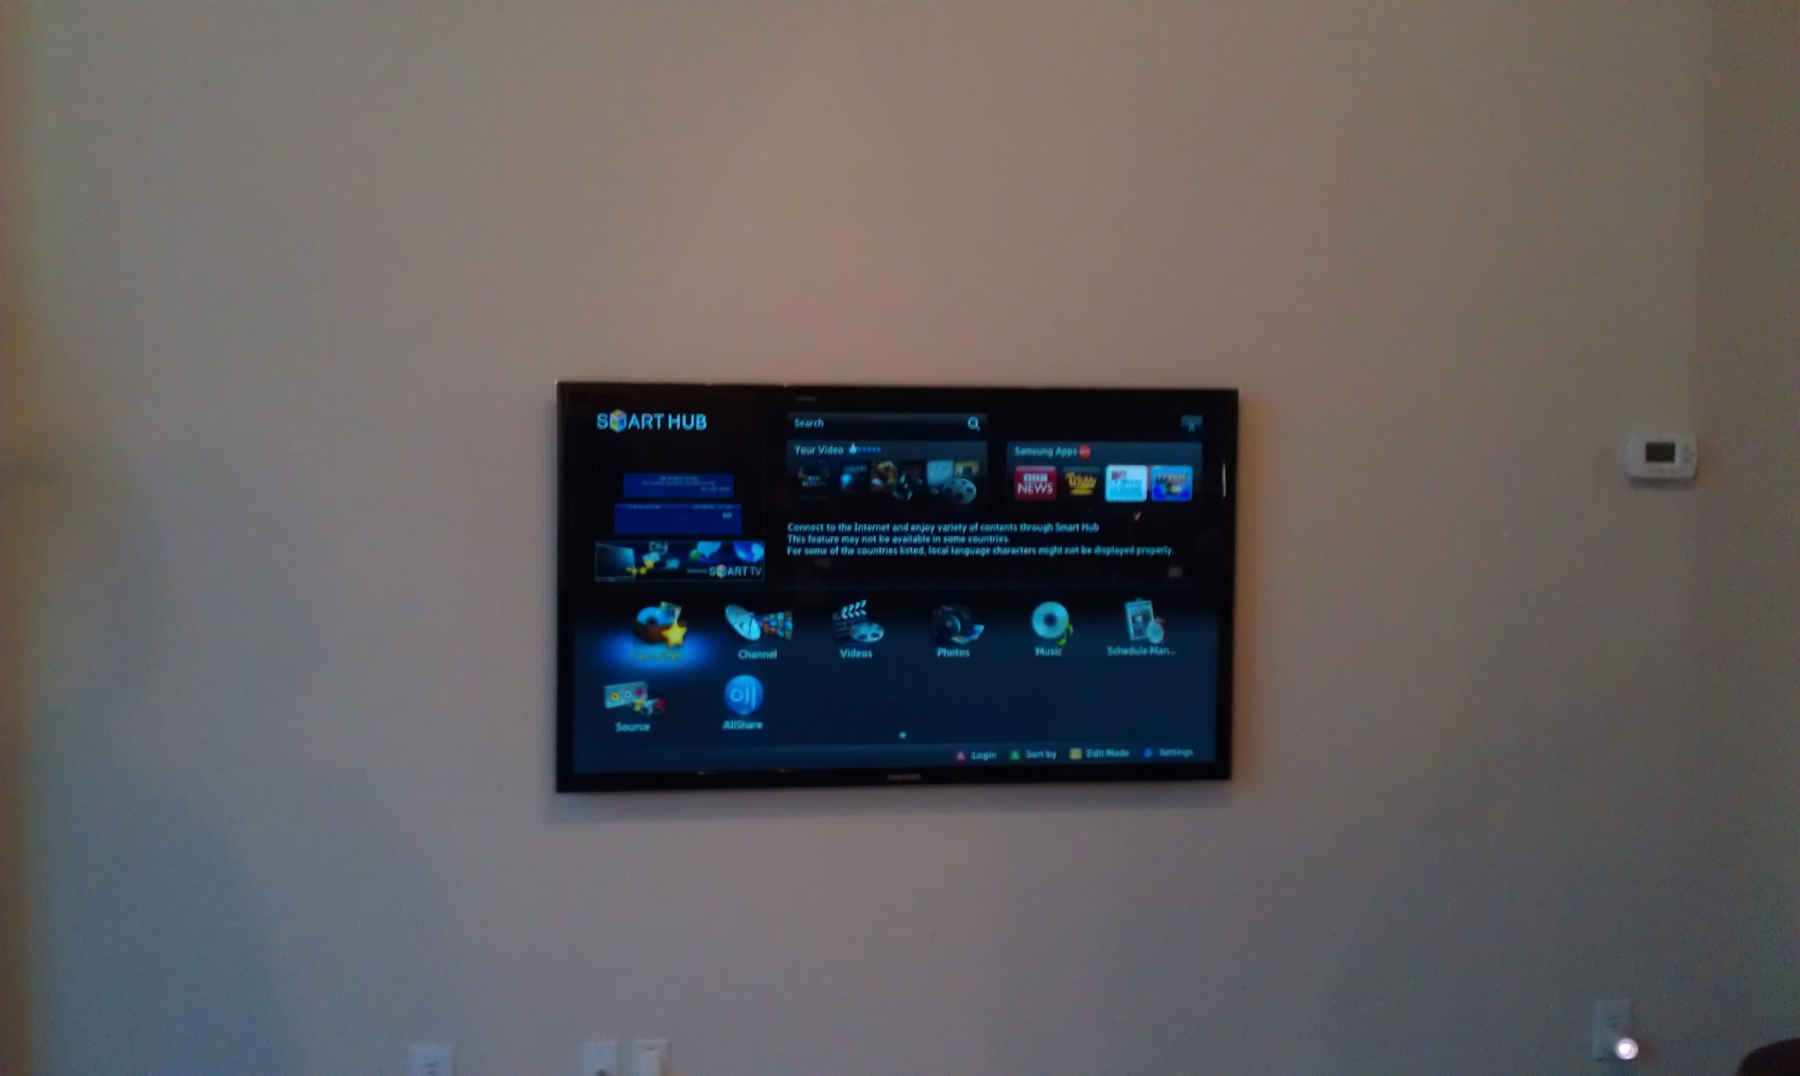 Wall Led Tv : samsung-55-led-tv-mounted-on-wall-with-in-wall-wiring-frisco-tx.jpg